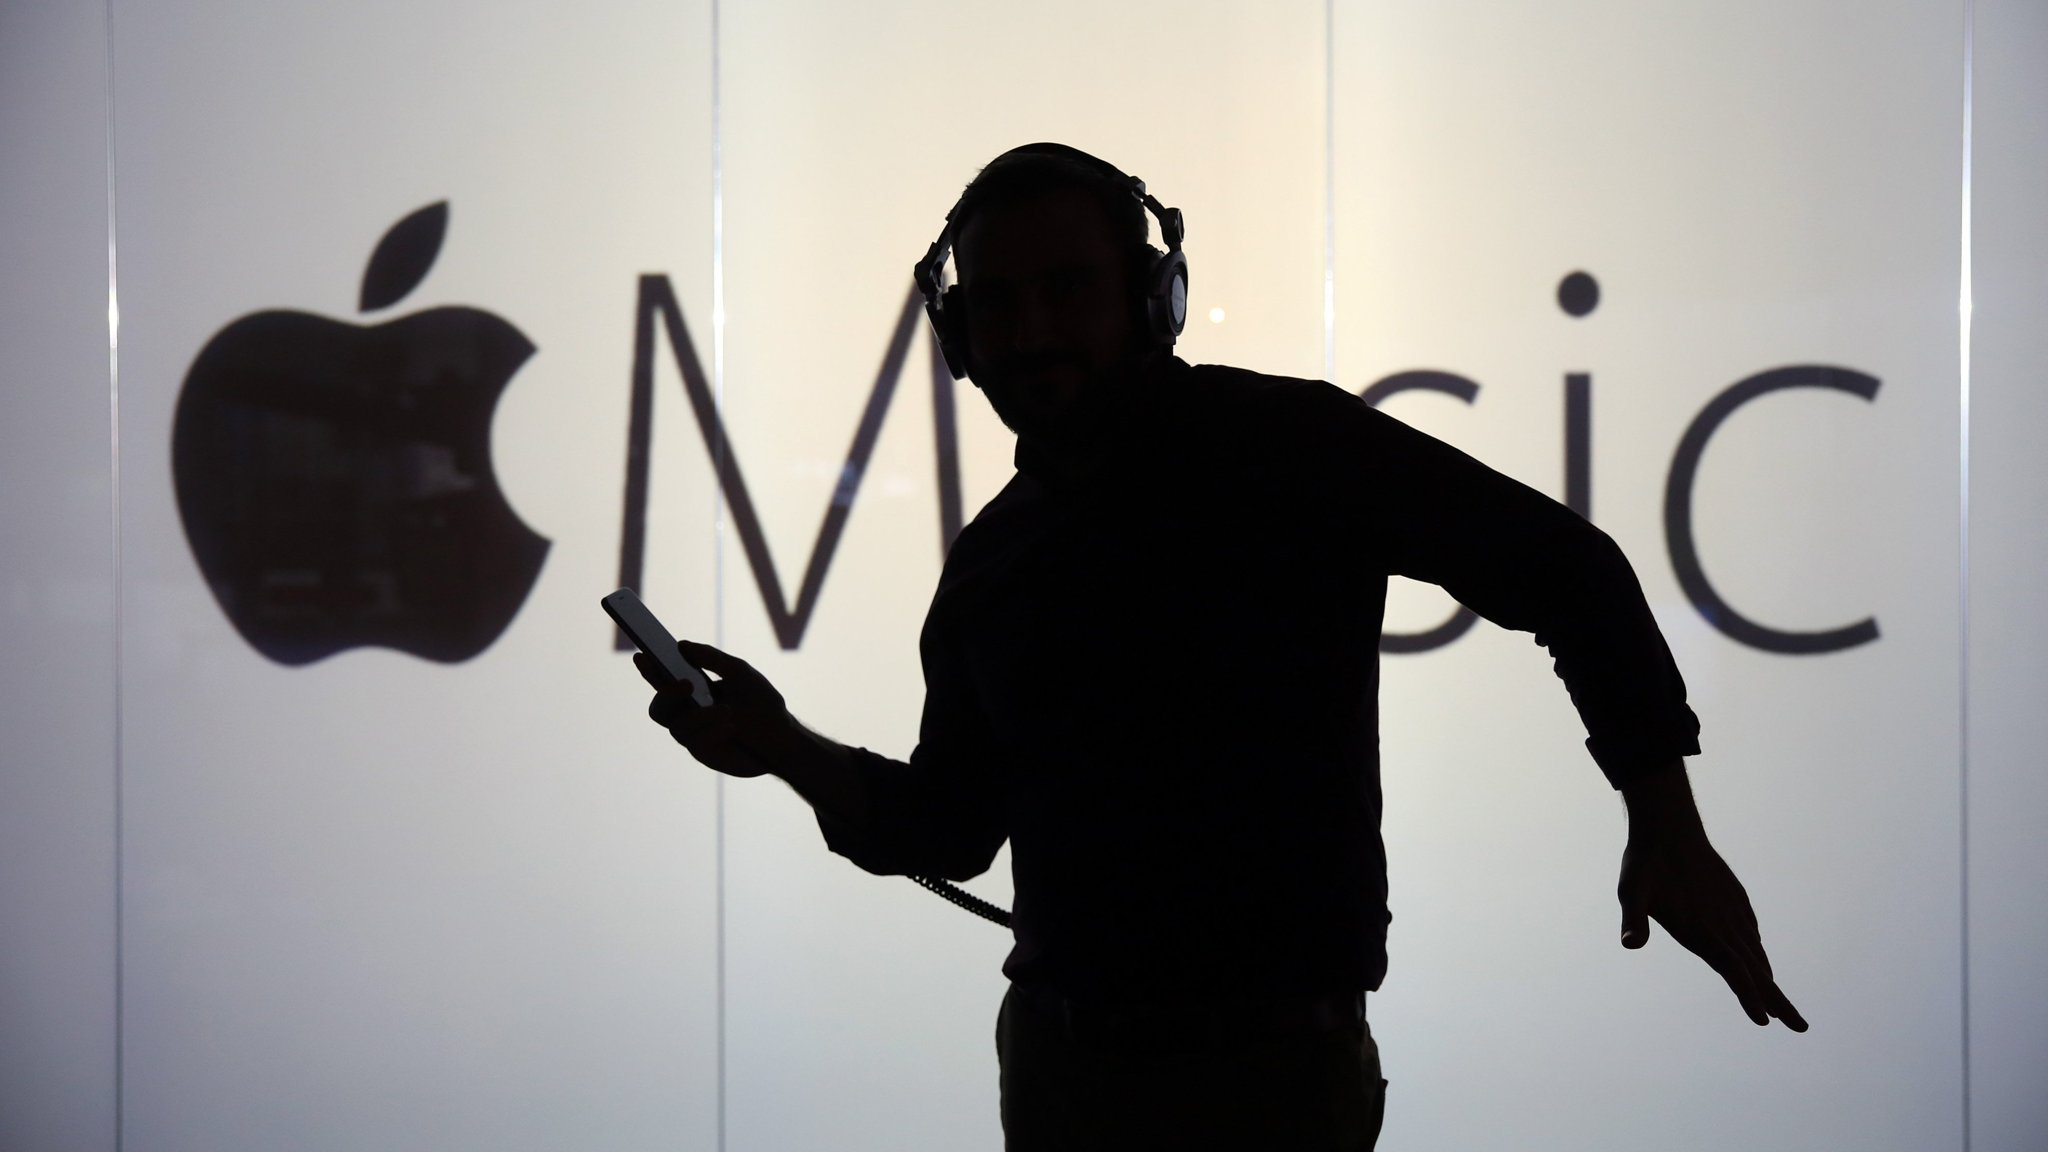 Apple tunes into terrestrial radio to compete with Spotify